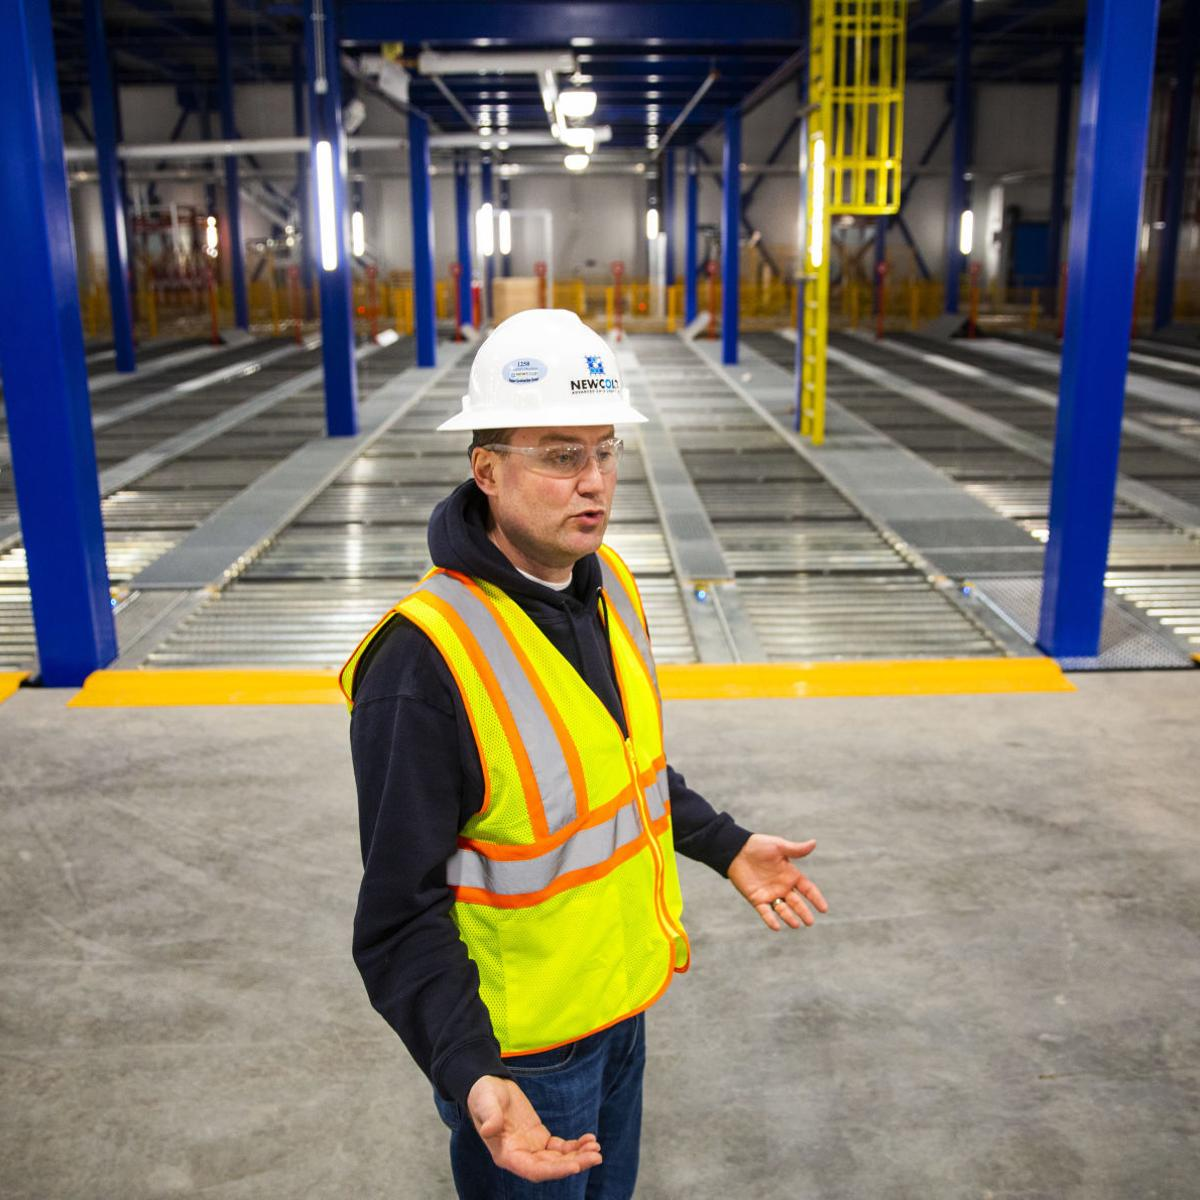 This new Burley warehouse is too cold for humans  That's